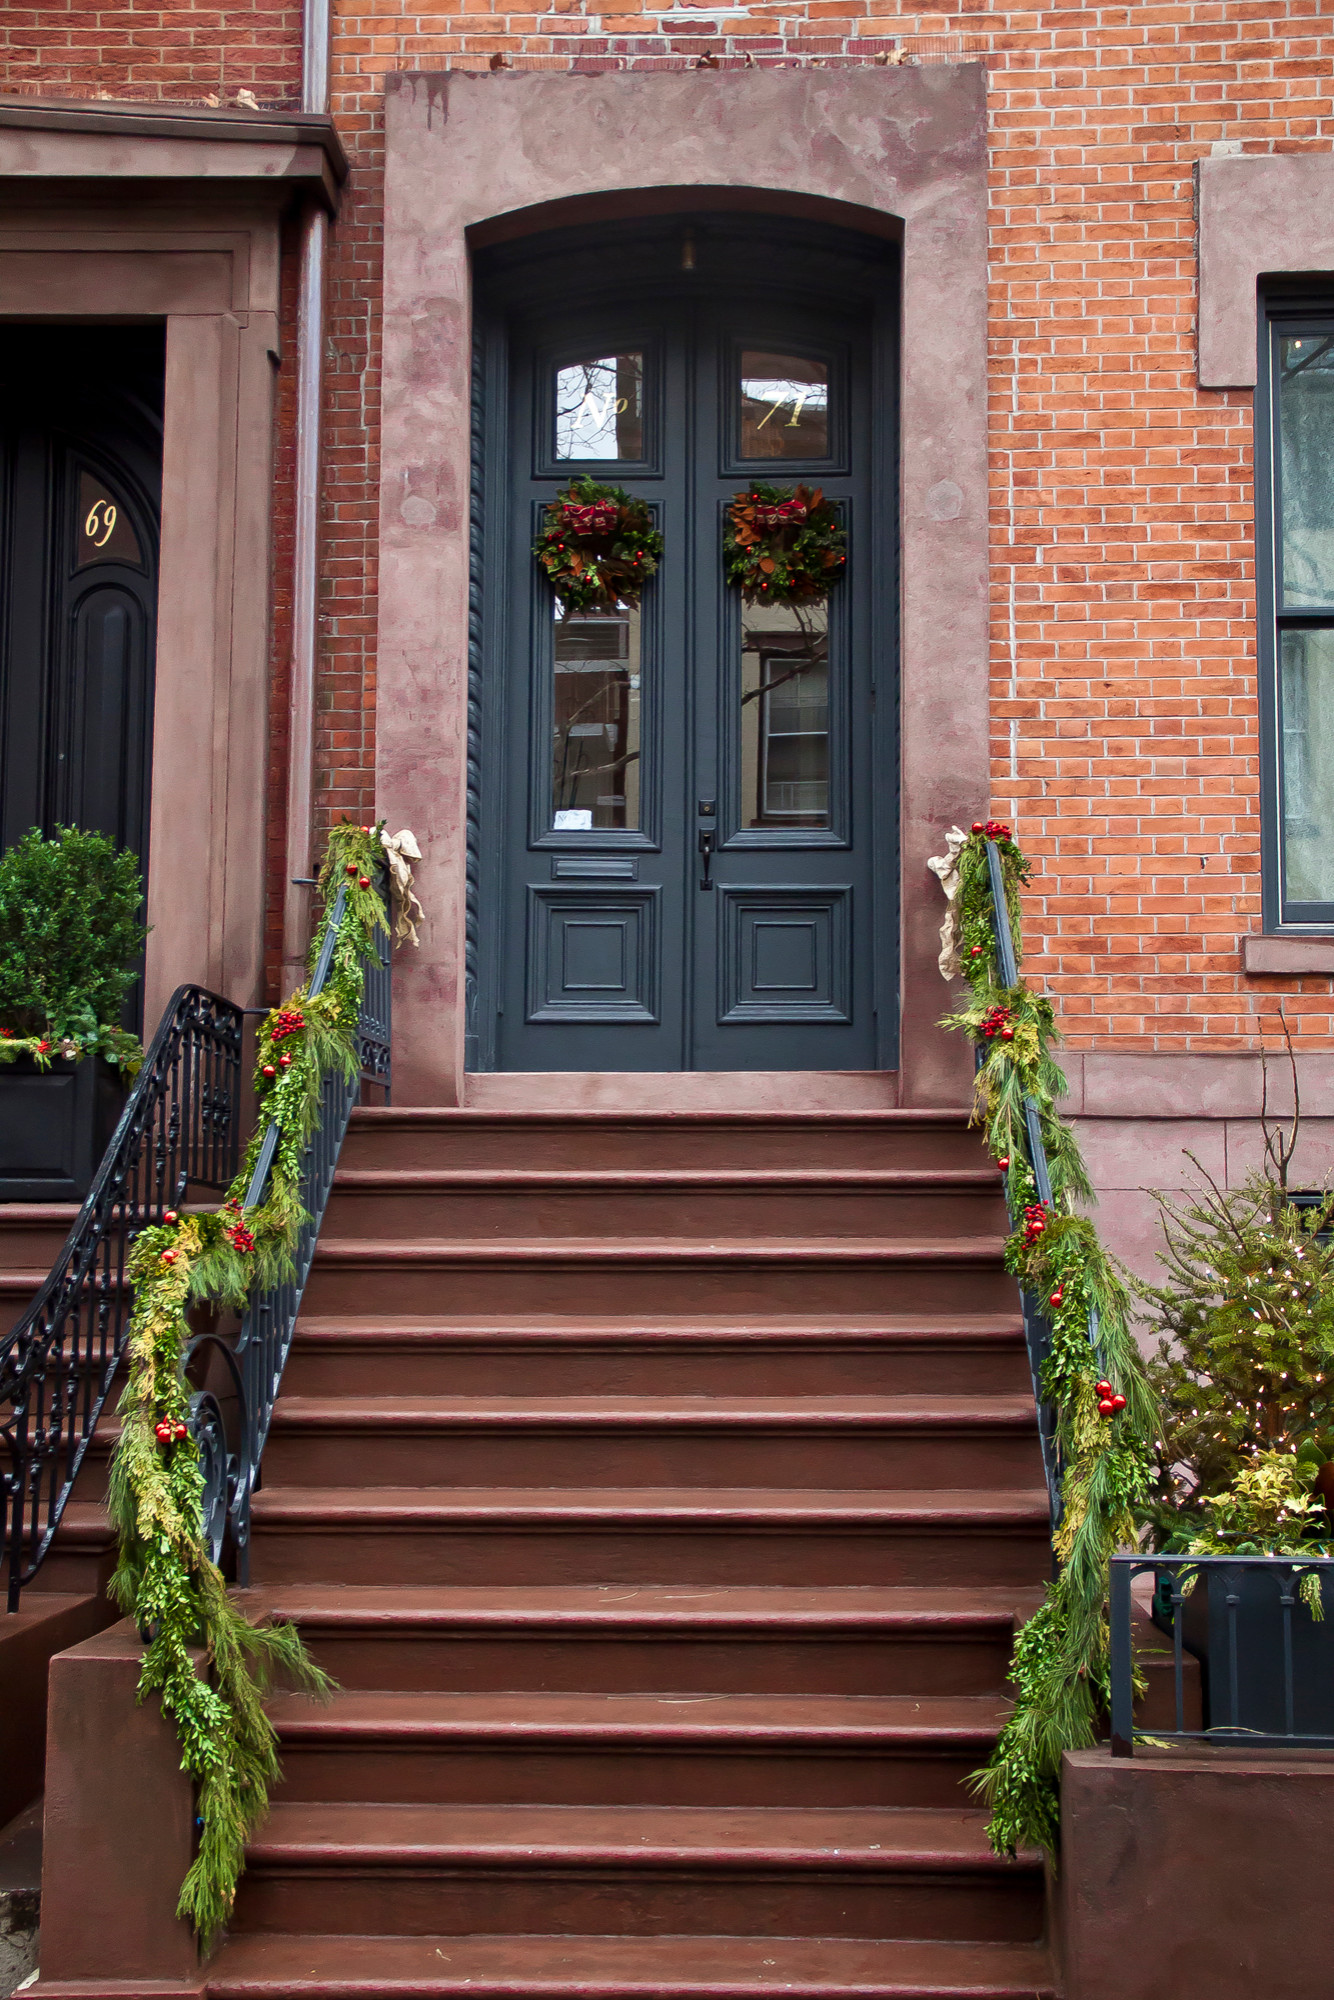 71 Willow Brownstone Christmas Dispaly